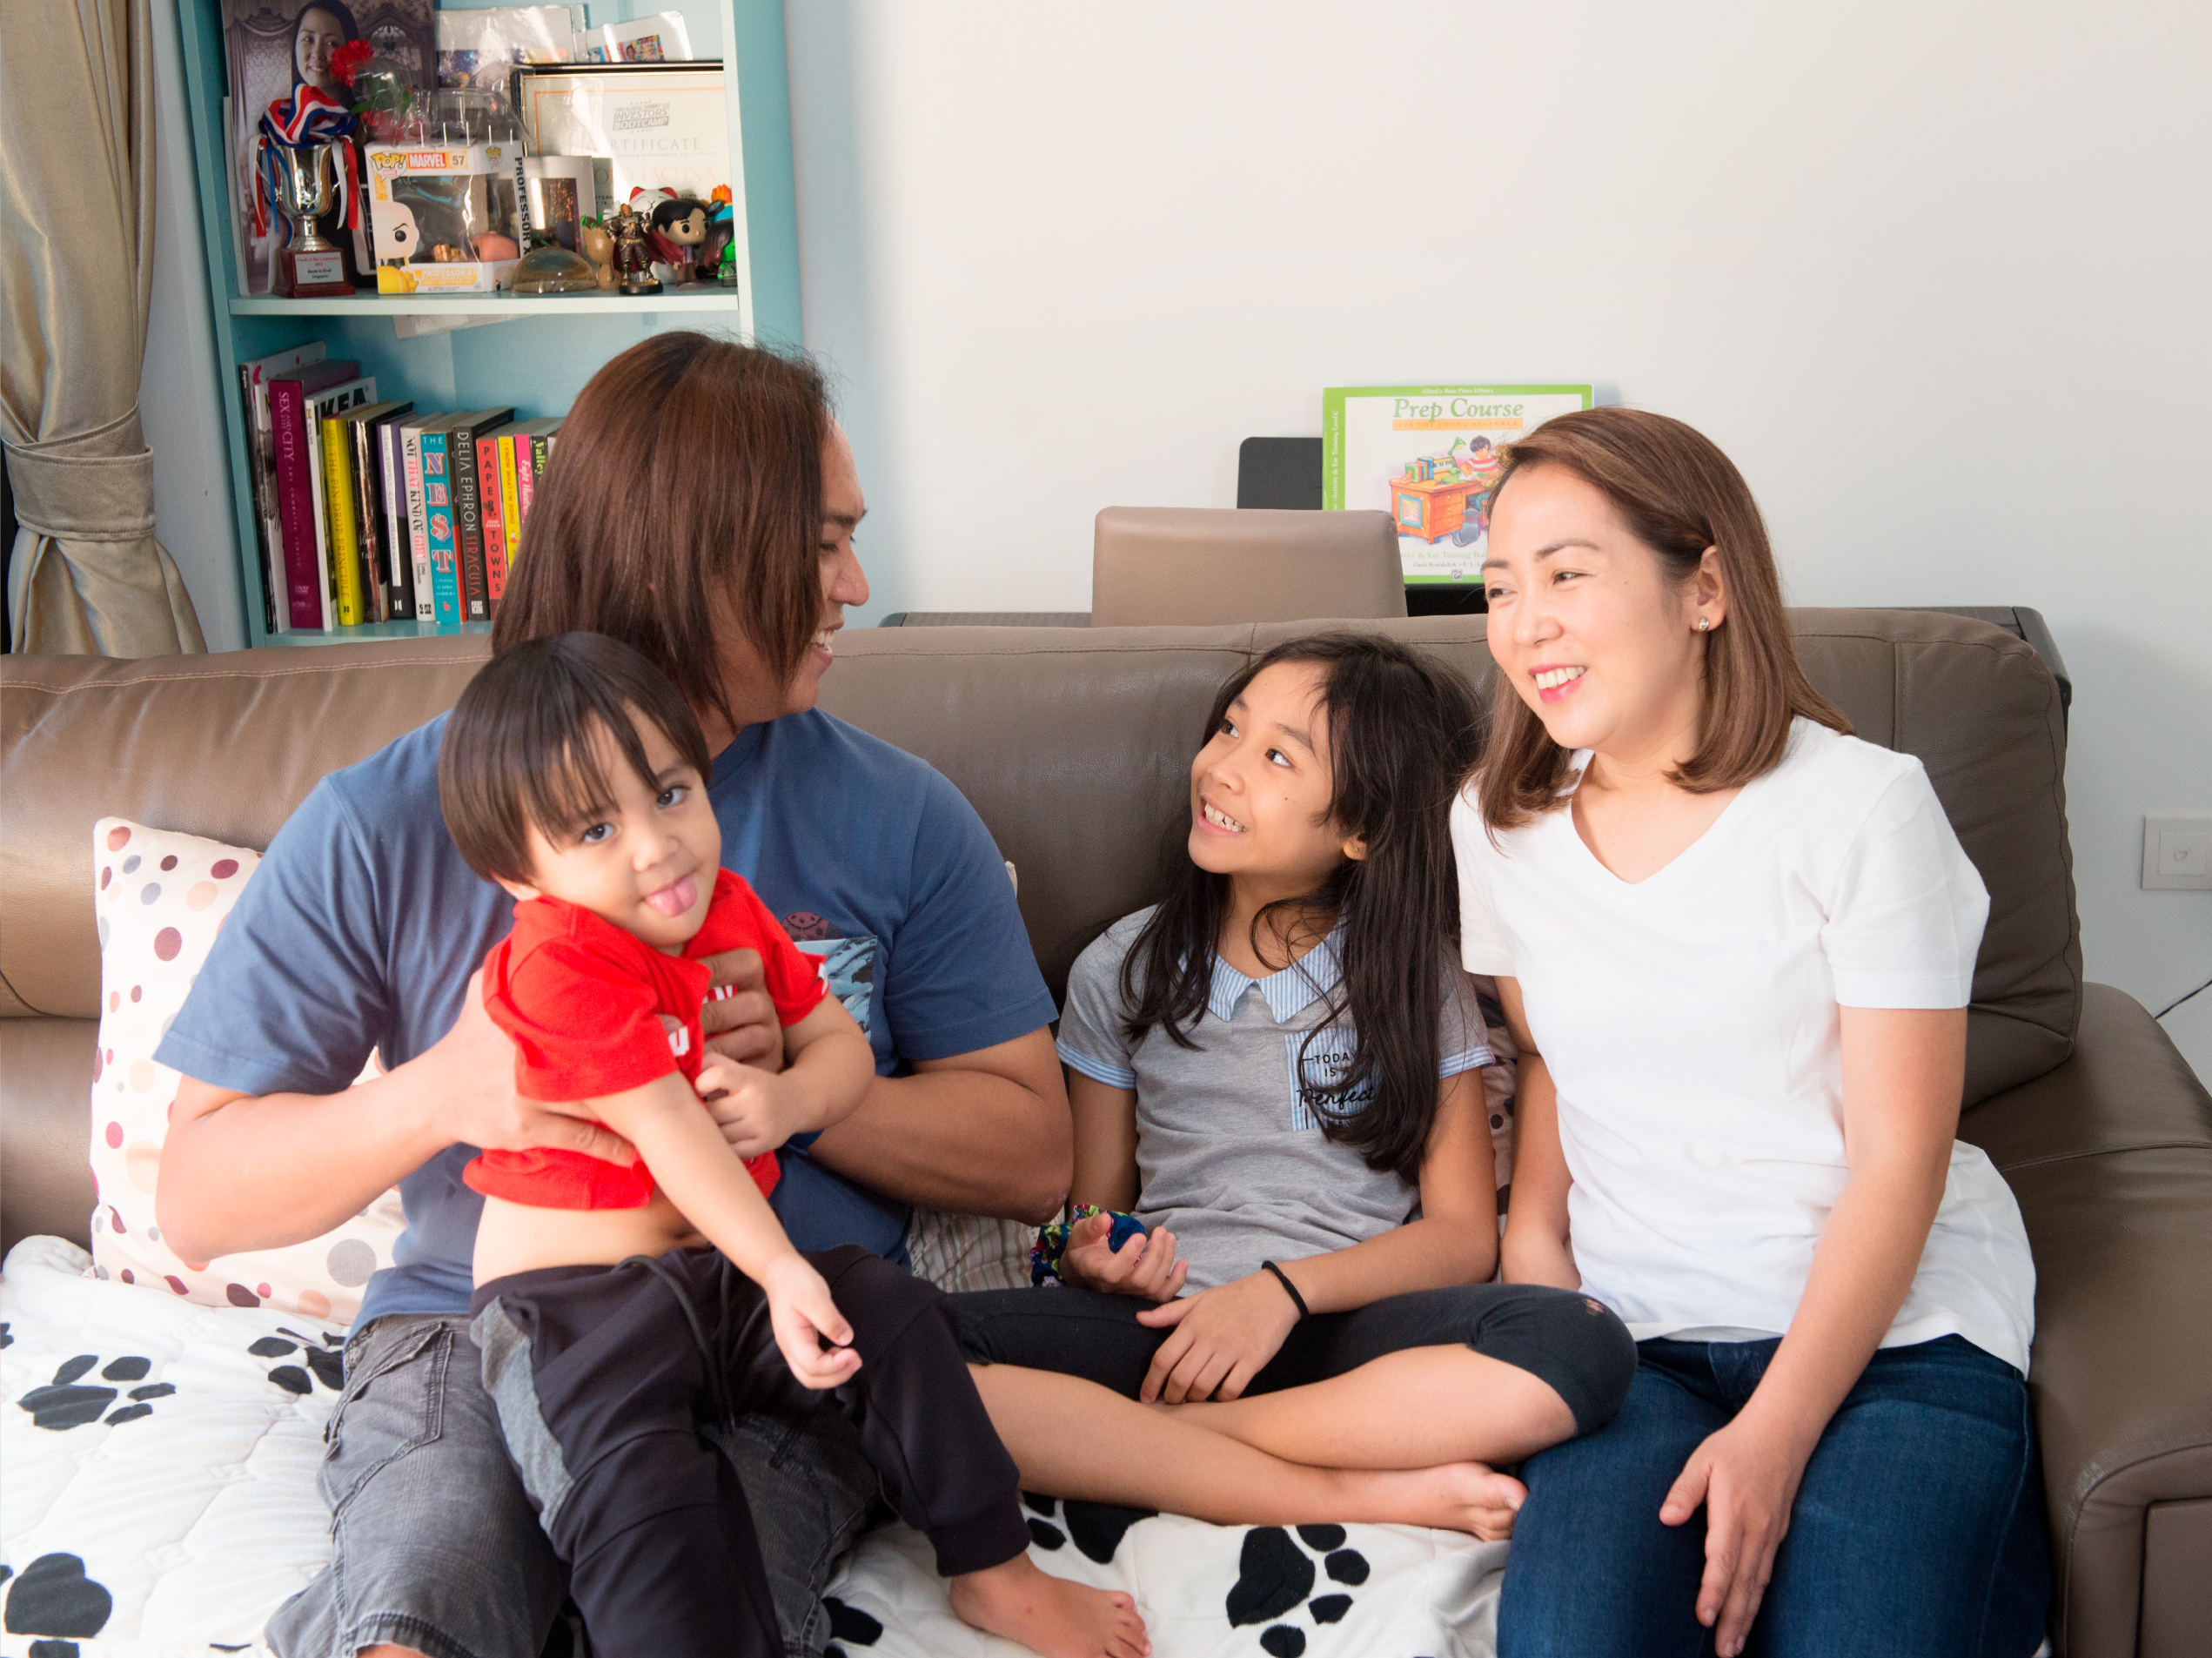 Foreign family living in a 4-room condo in Pasir Ris